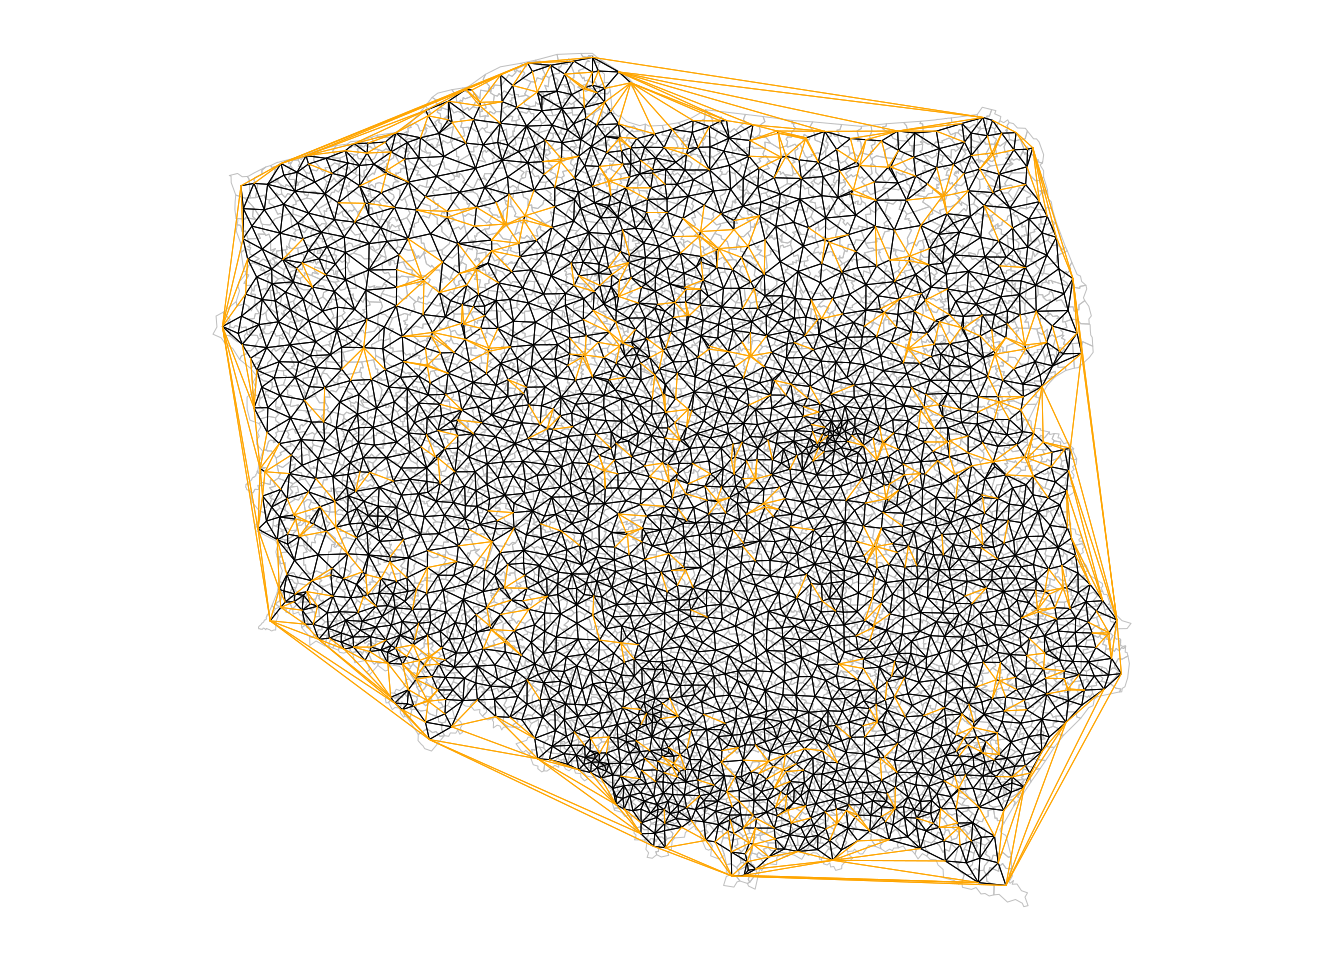 Triangulated (orange + black) and sphere of influence neighbours (black)